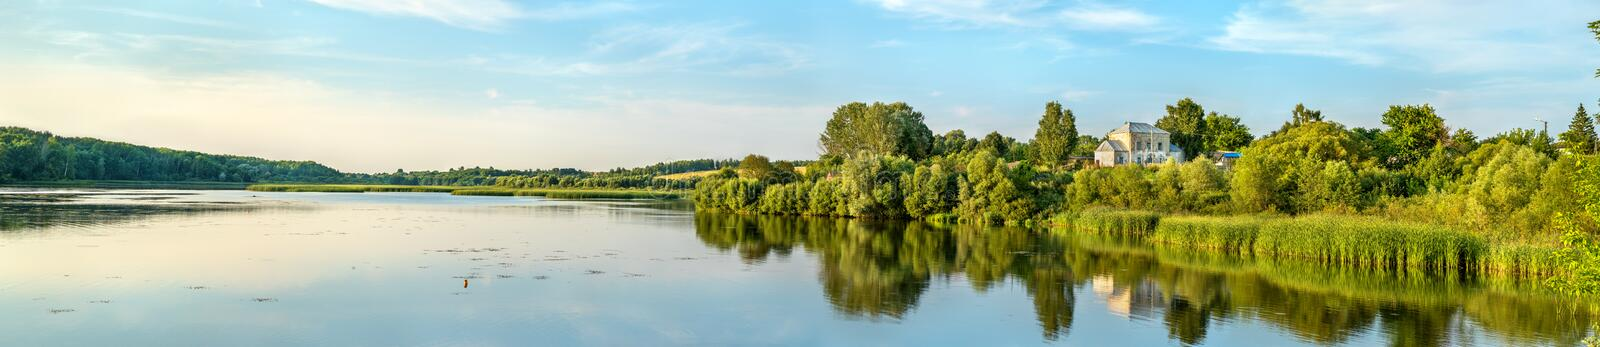 Pond on the Vablya River at Glazovo, a typical village on the Central Russian Upland. Kursk region of Russia royalty free stock photos